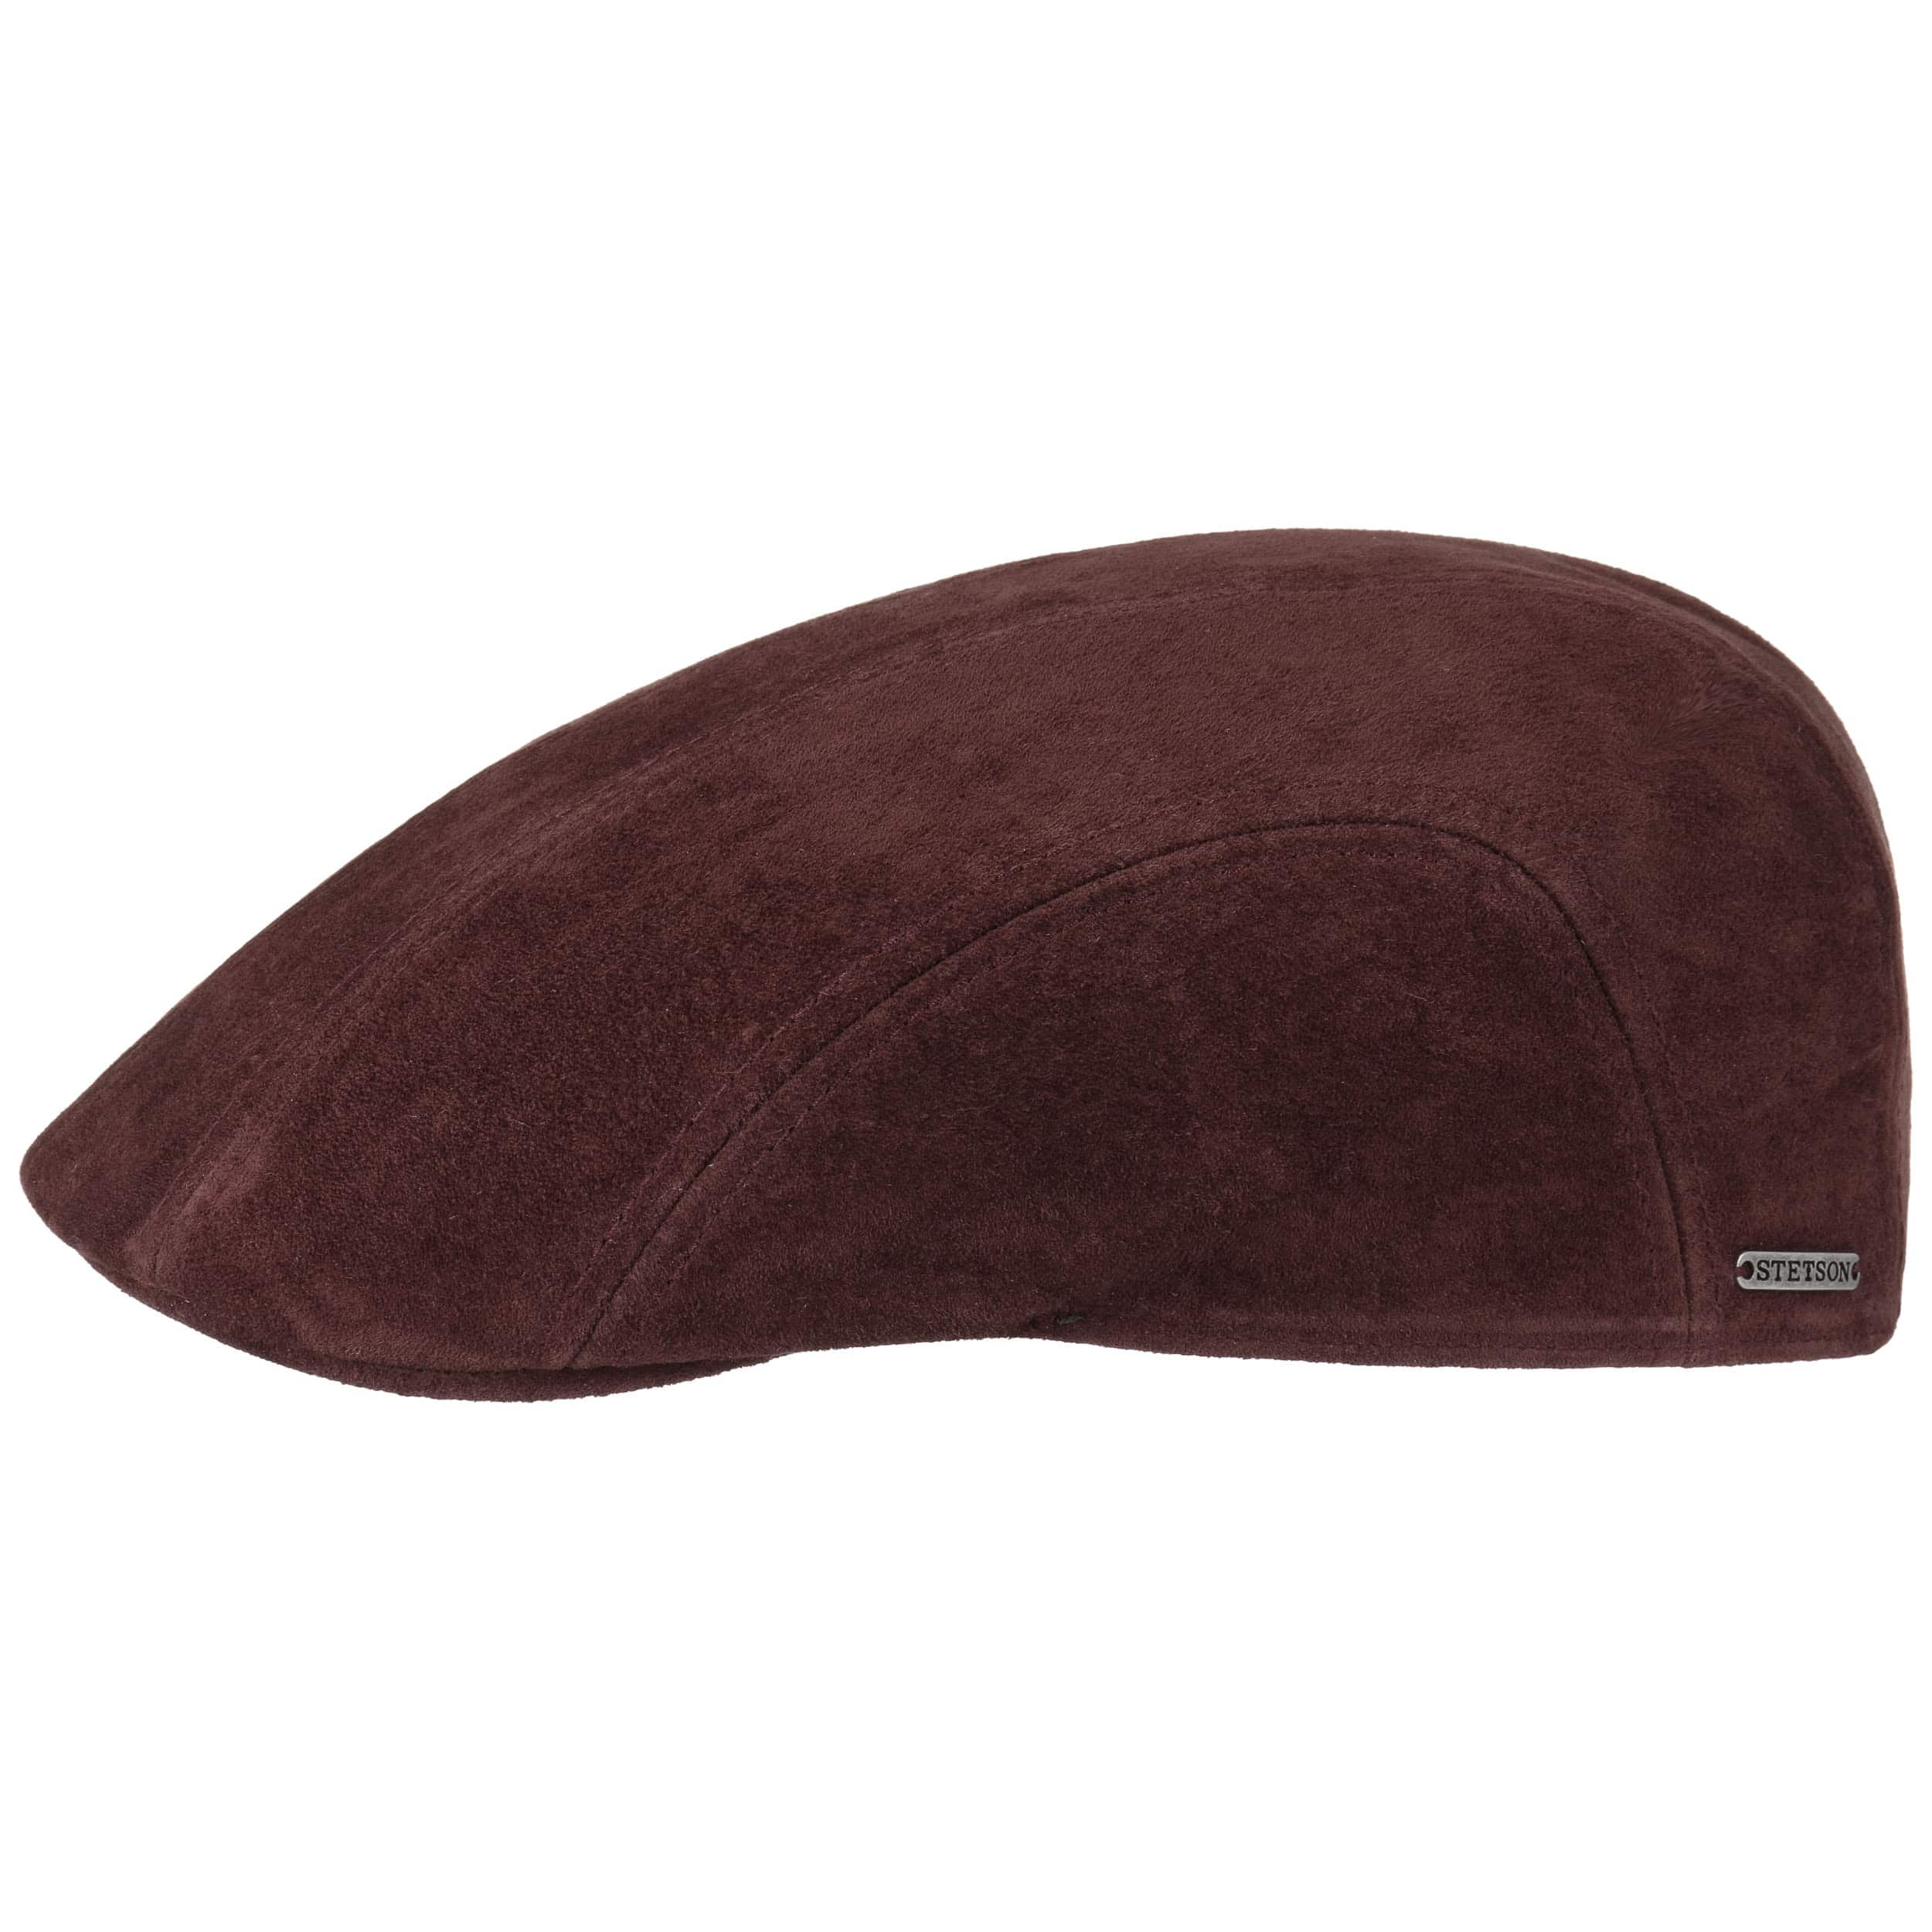 Nubuck Leather Pigskin Flat Cap. by Stetson 20627cabbc4